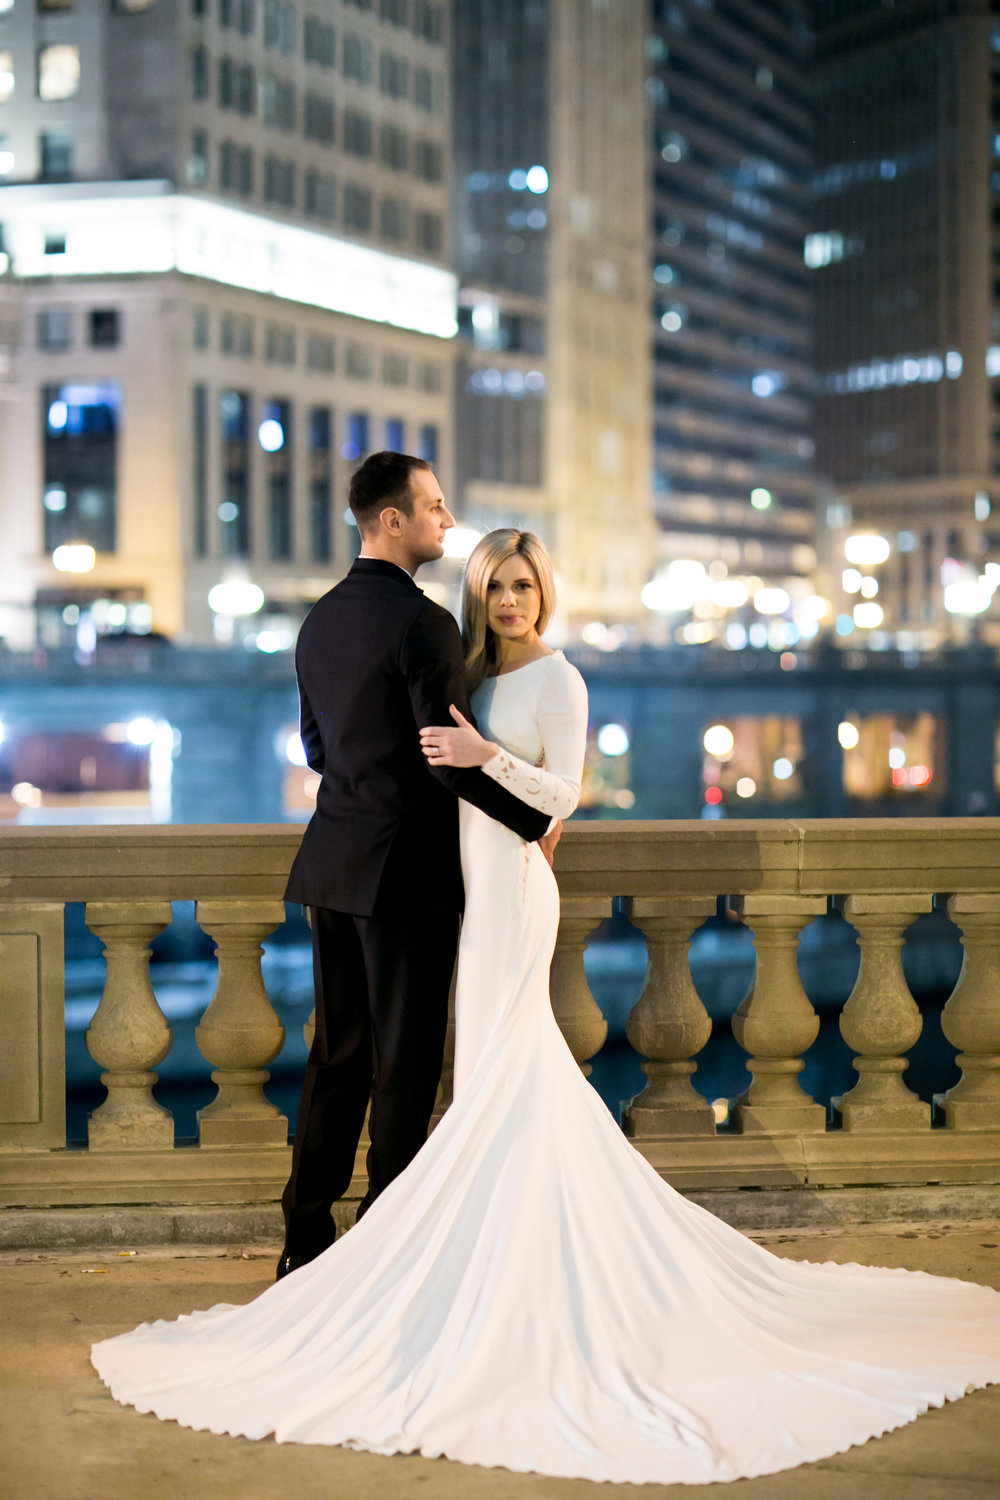 LisaDiederichPhotography_Meghan&Pete_ChicagoWedding_Blog-36.jpg